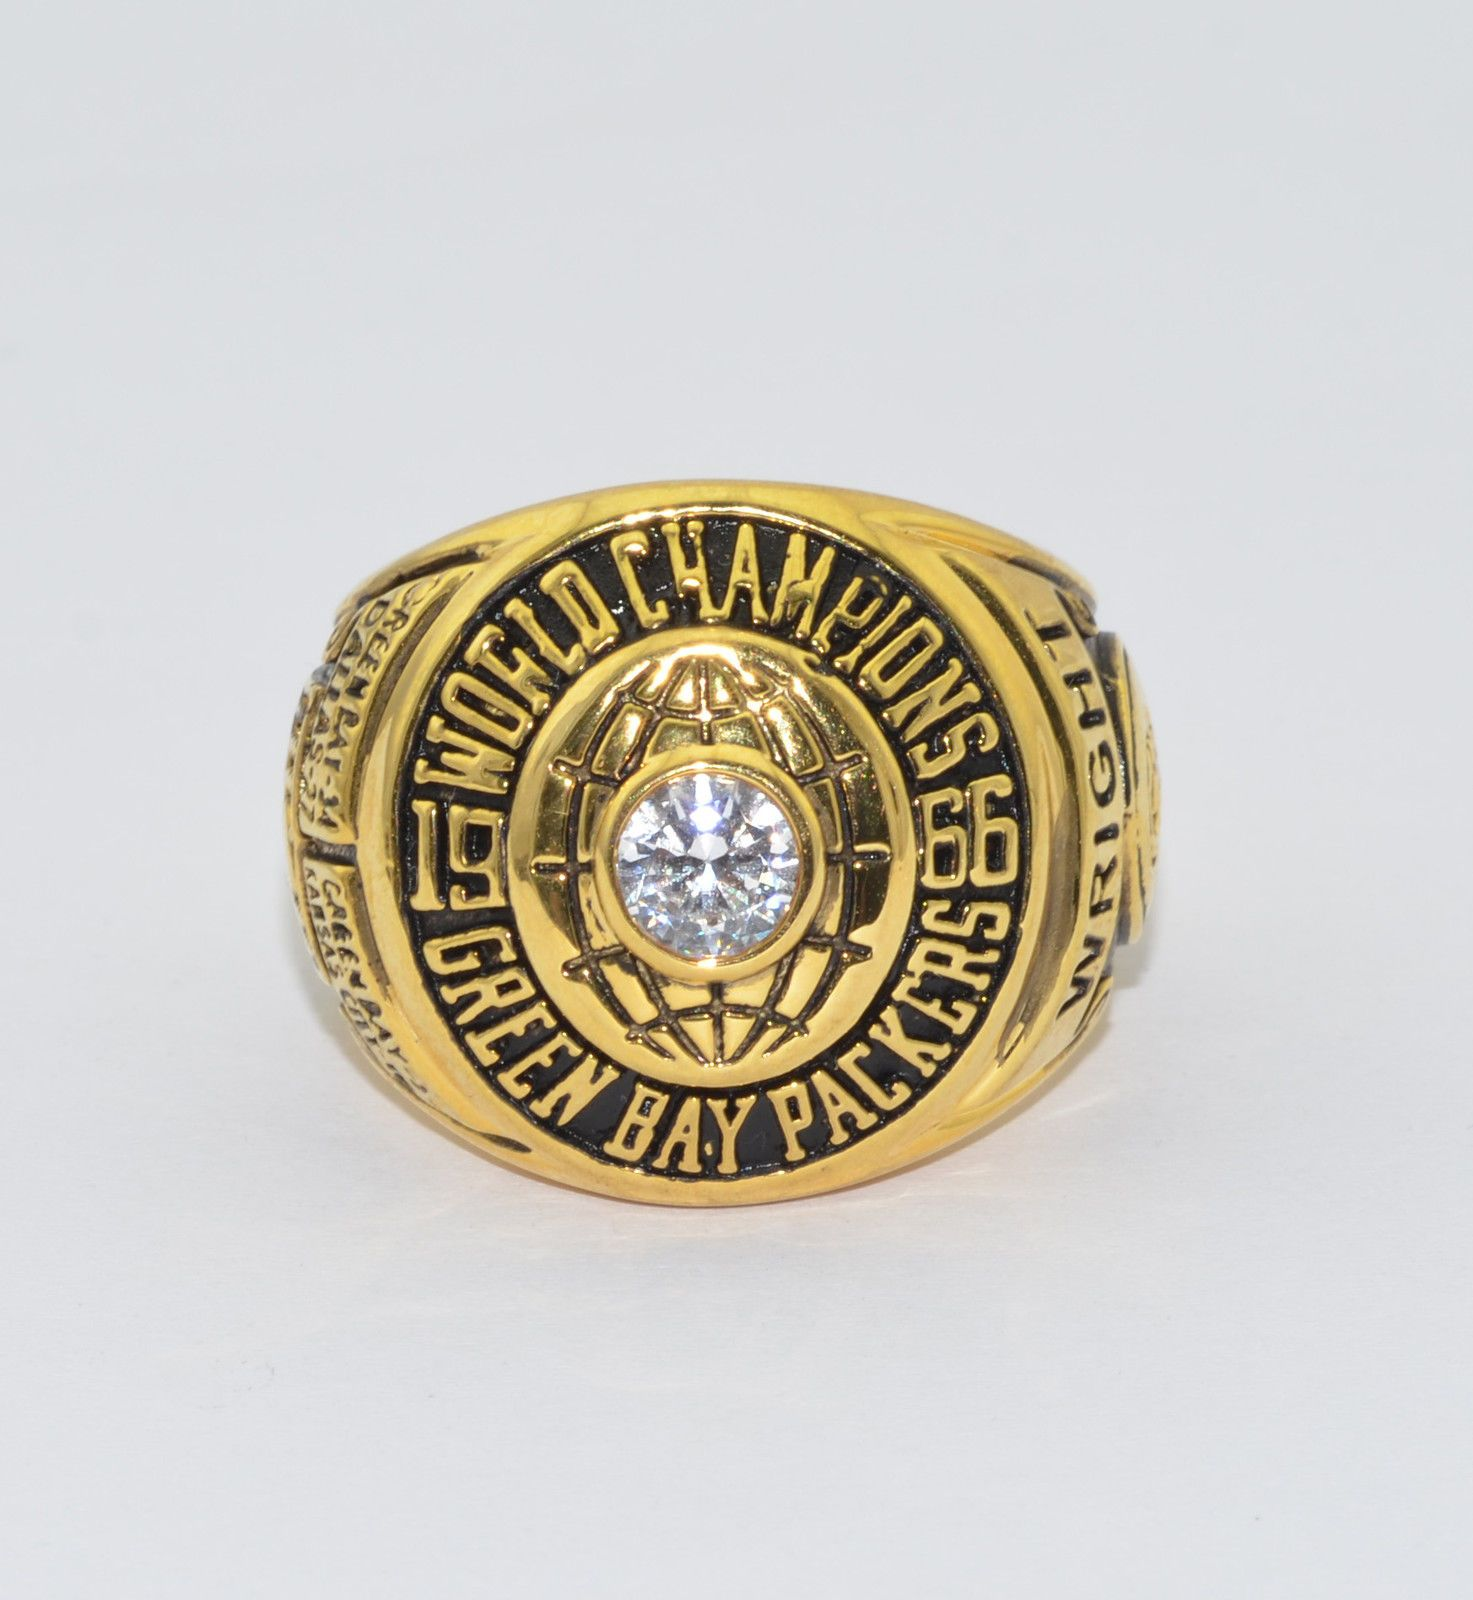 1966 Green Bay Packers Super Bowl Http Accuratearm Com Green Bay Packers Green Bay Packers Fans Packers Super Bowl